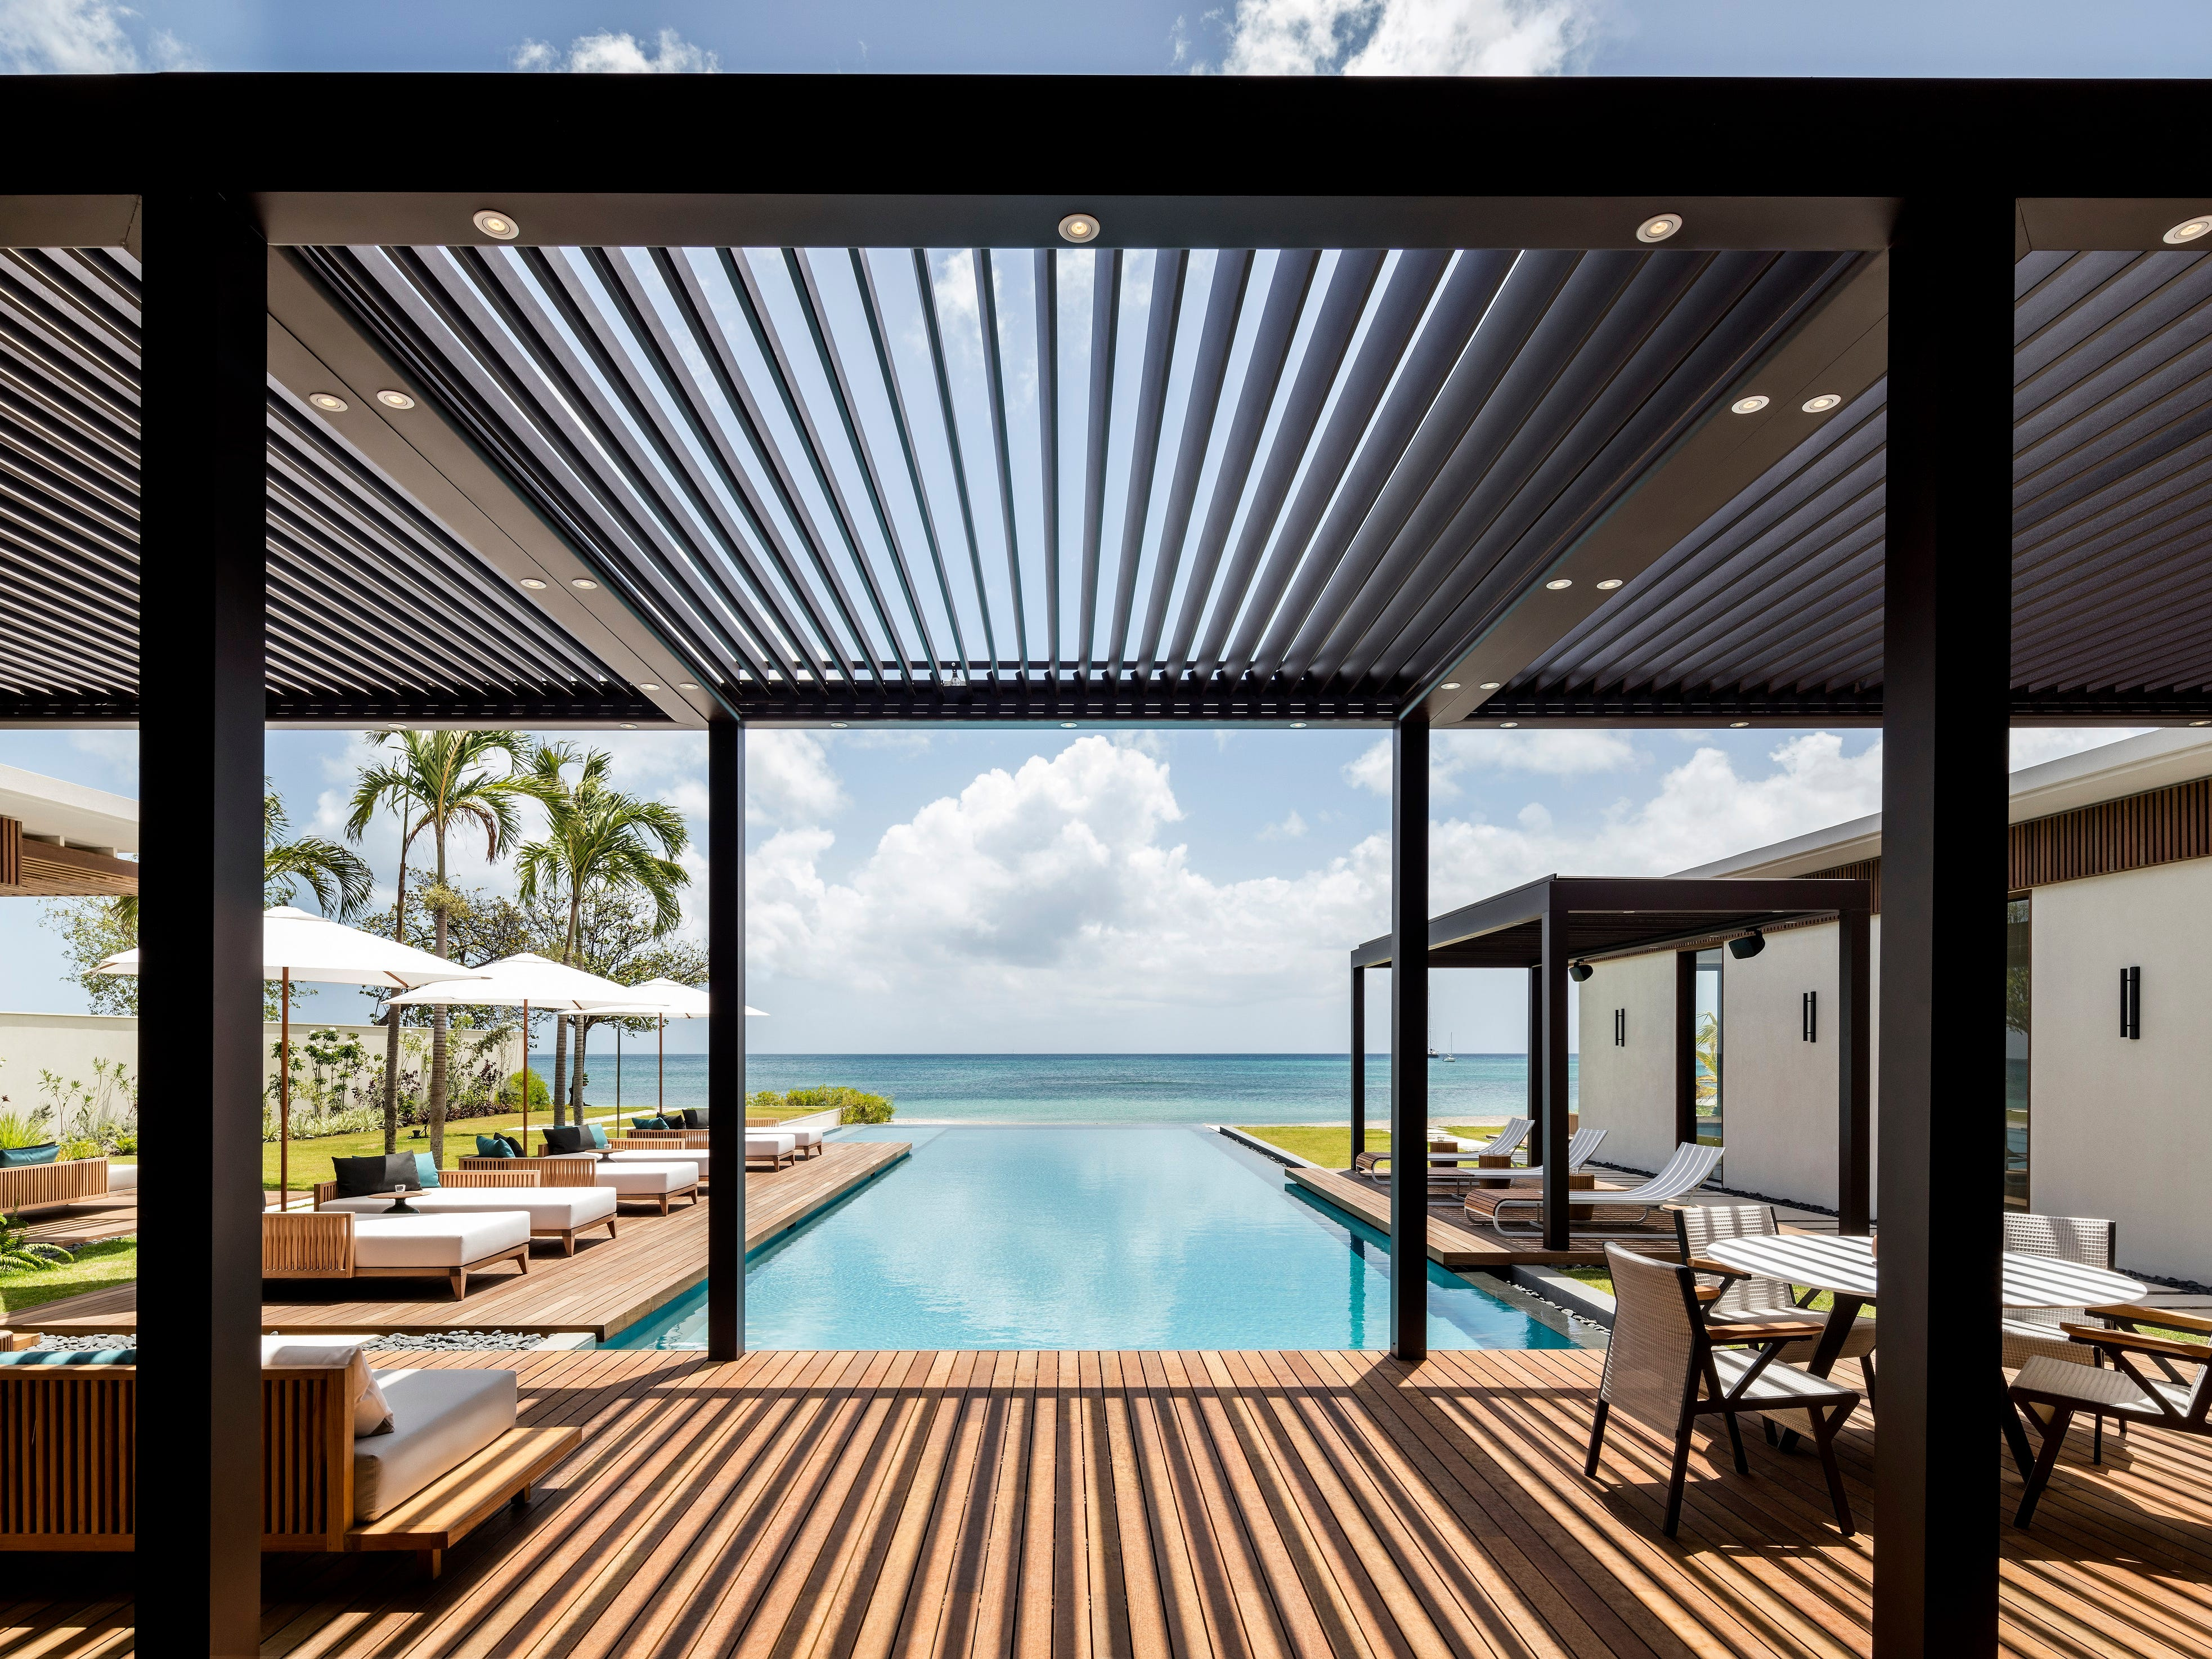 Debuting Dec. 1, Silversands Grenada was the first major resort to open on Grand Anse Beach in 25 years. Catering to luxury-seekers, the tony resort is a newly minted member of Leading Hotels of the World.